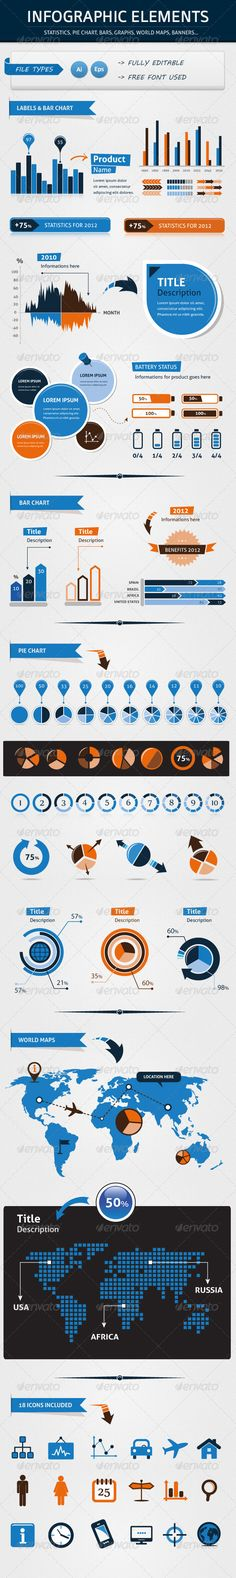 INFOGRAPHIC ELEMENTS PACK FOR YOUR BUSINESS Template Vector EPS, Vector AI. Download here: http://graphicriver.net/item/infographic-elements-pack-for-your-business/2677259?s_rank=133&ref=yinkira